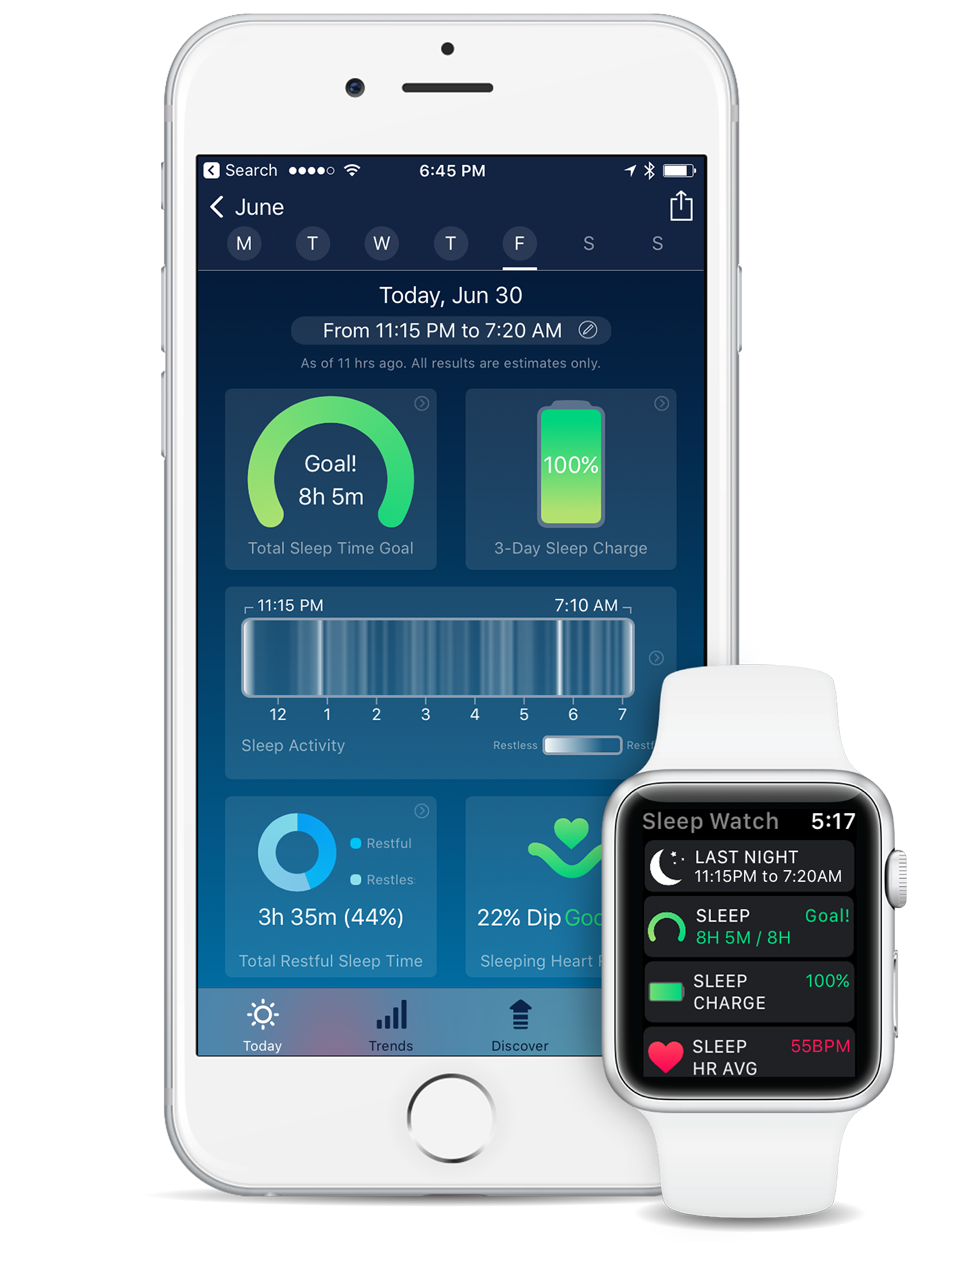 Sleep Watch Version 3 by Bodymatter on iPhone and Apple Watch